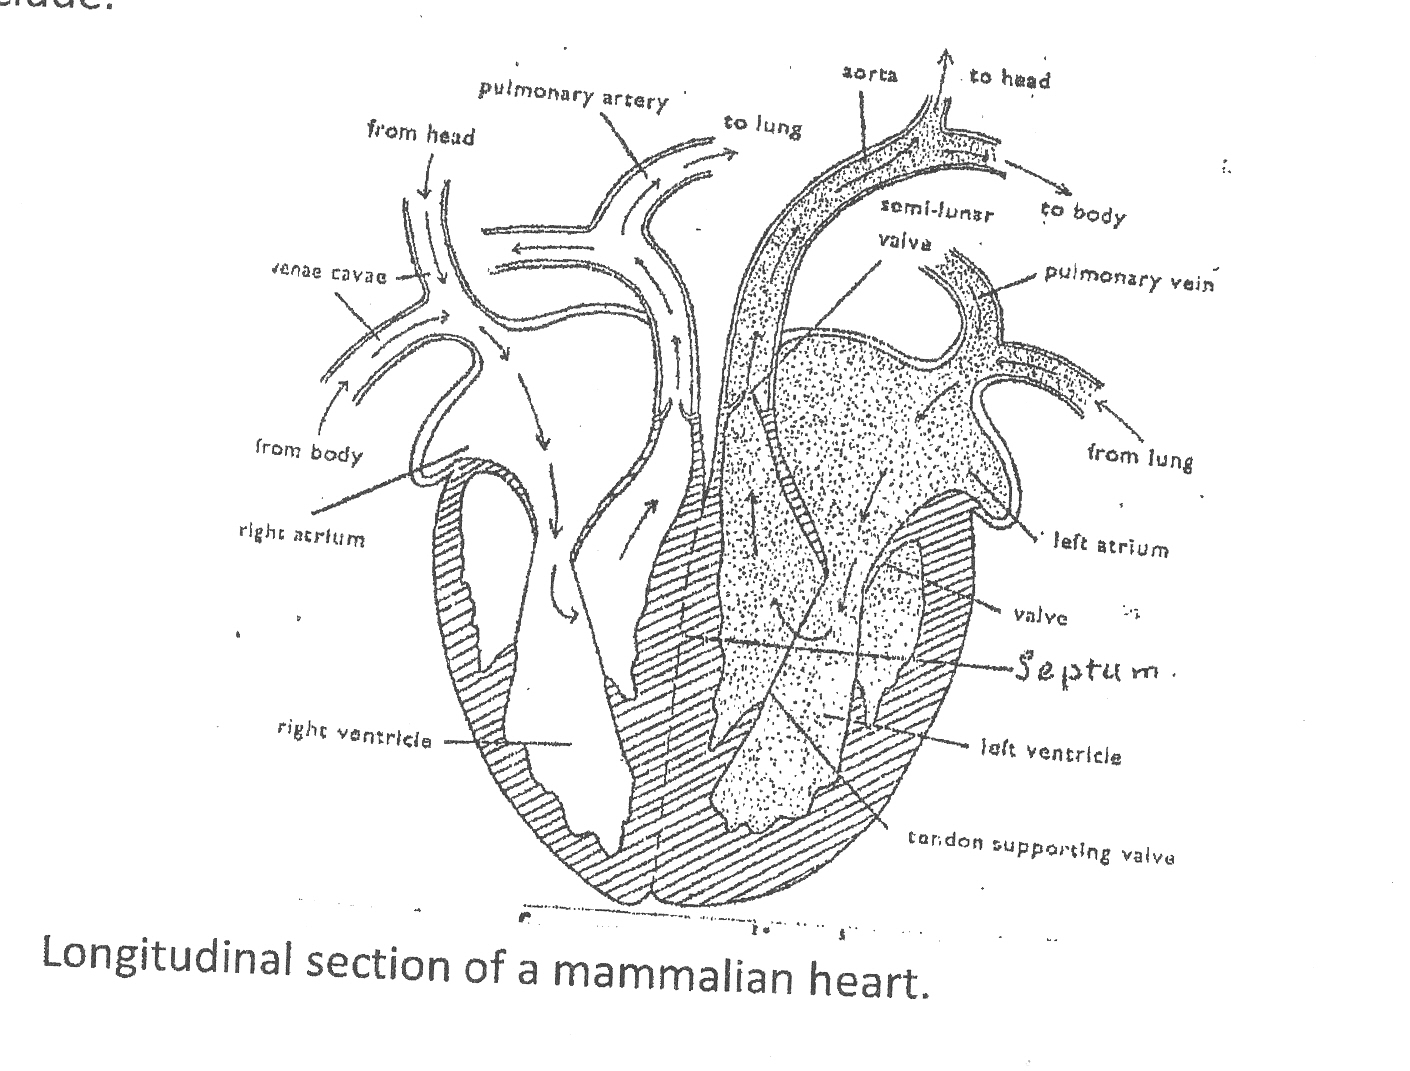 Biology 2 novdec 2009 mammalian blood flow from the heart to the lungs and back to the heart is known as pulmonary circulation deoxygenated blood ccuart Gallery